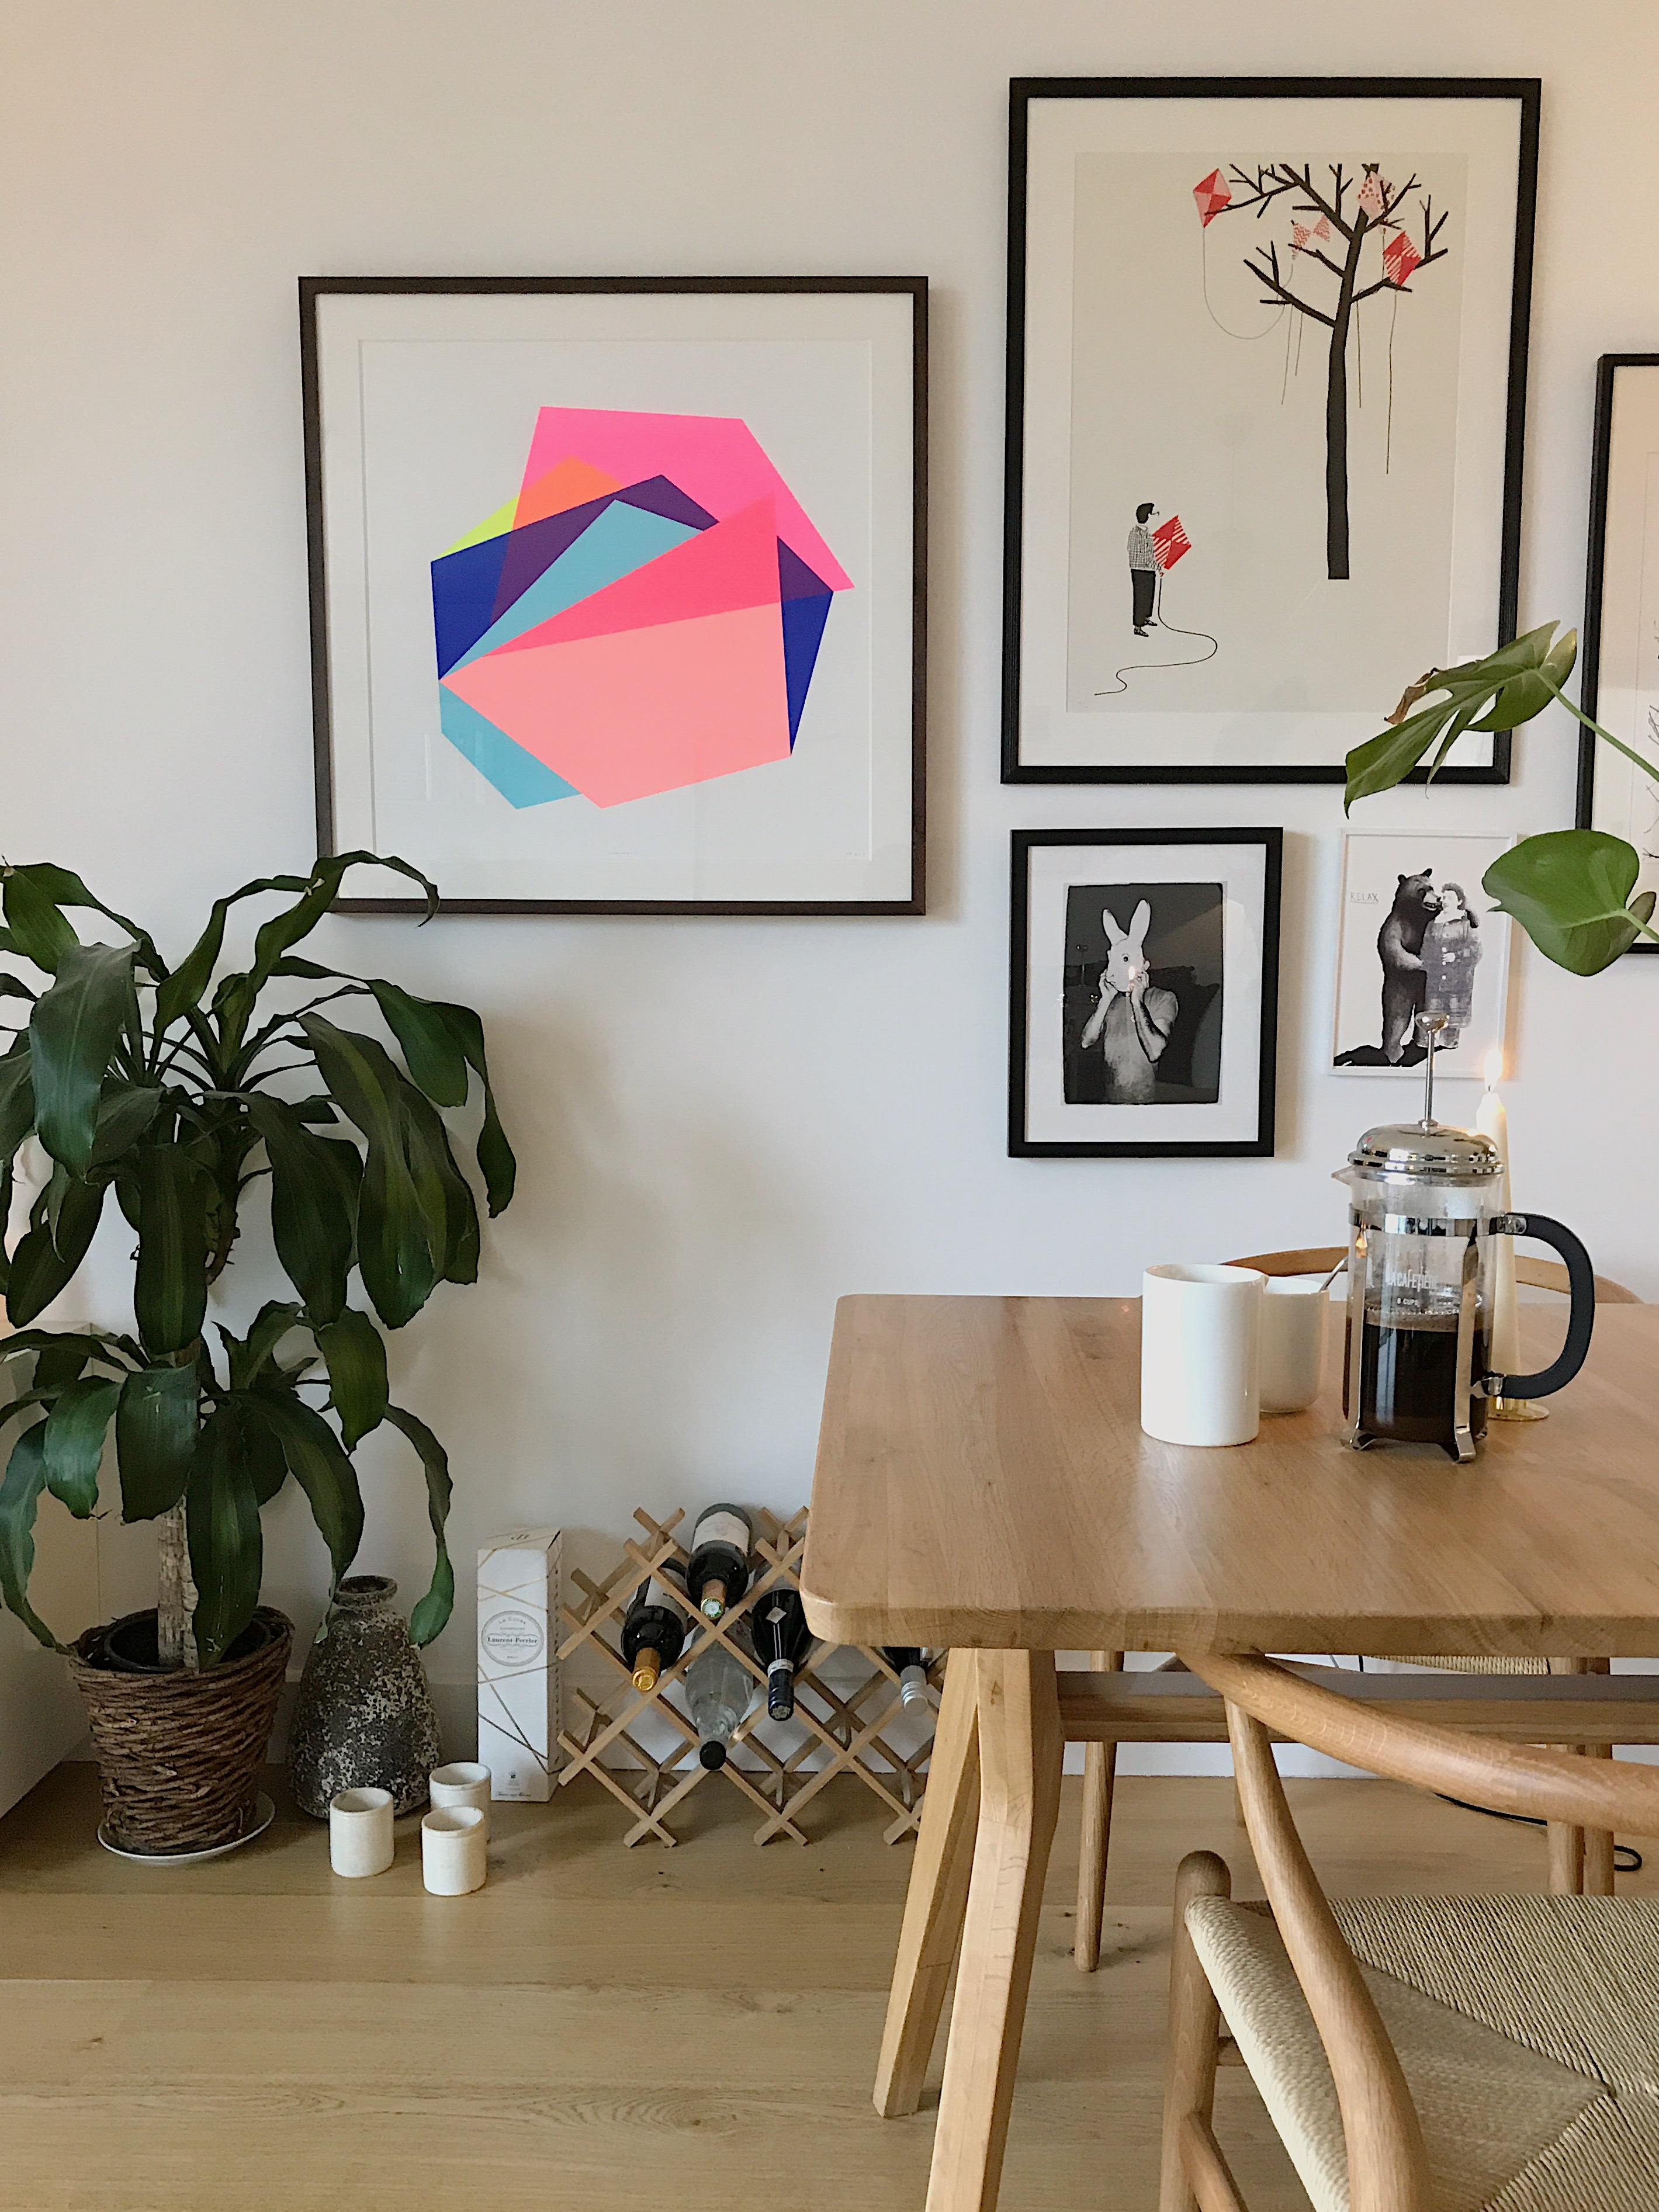 Holly Selby's home, featuring artwork by Frea Buckler